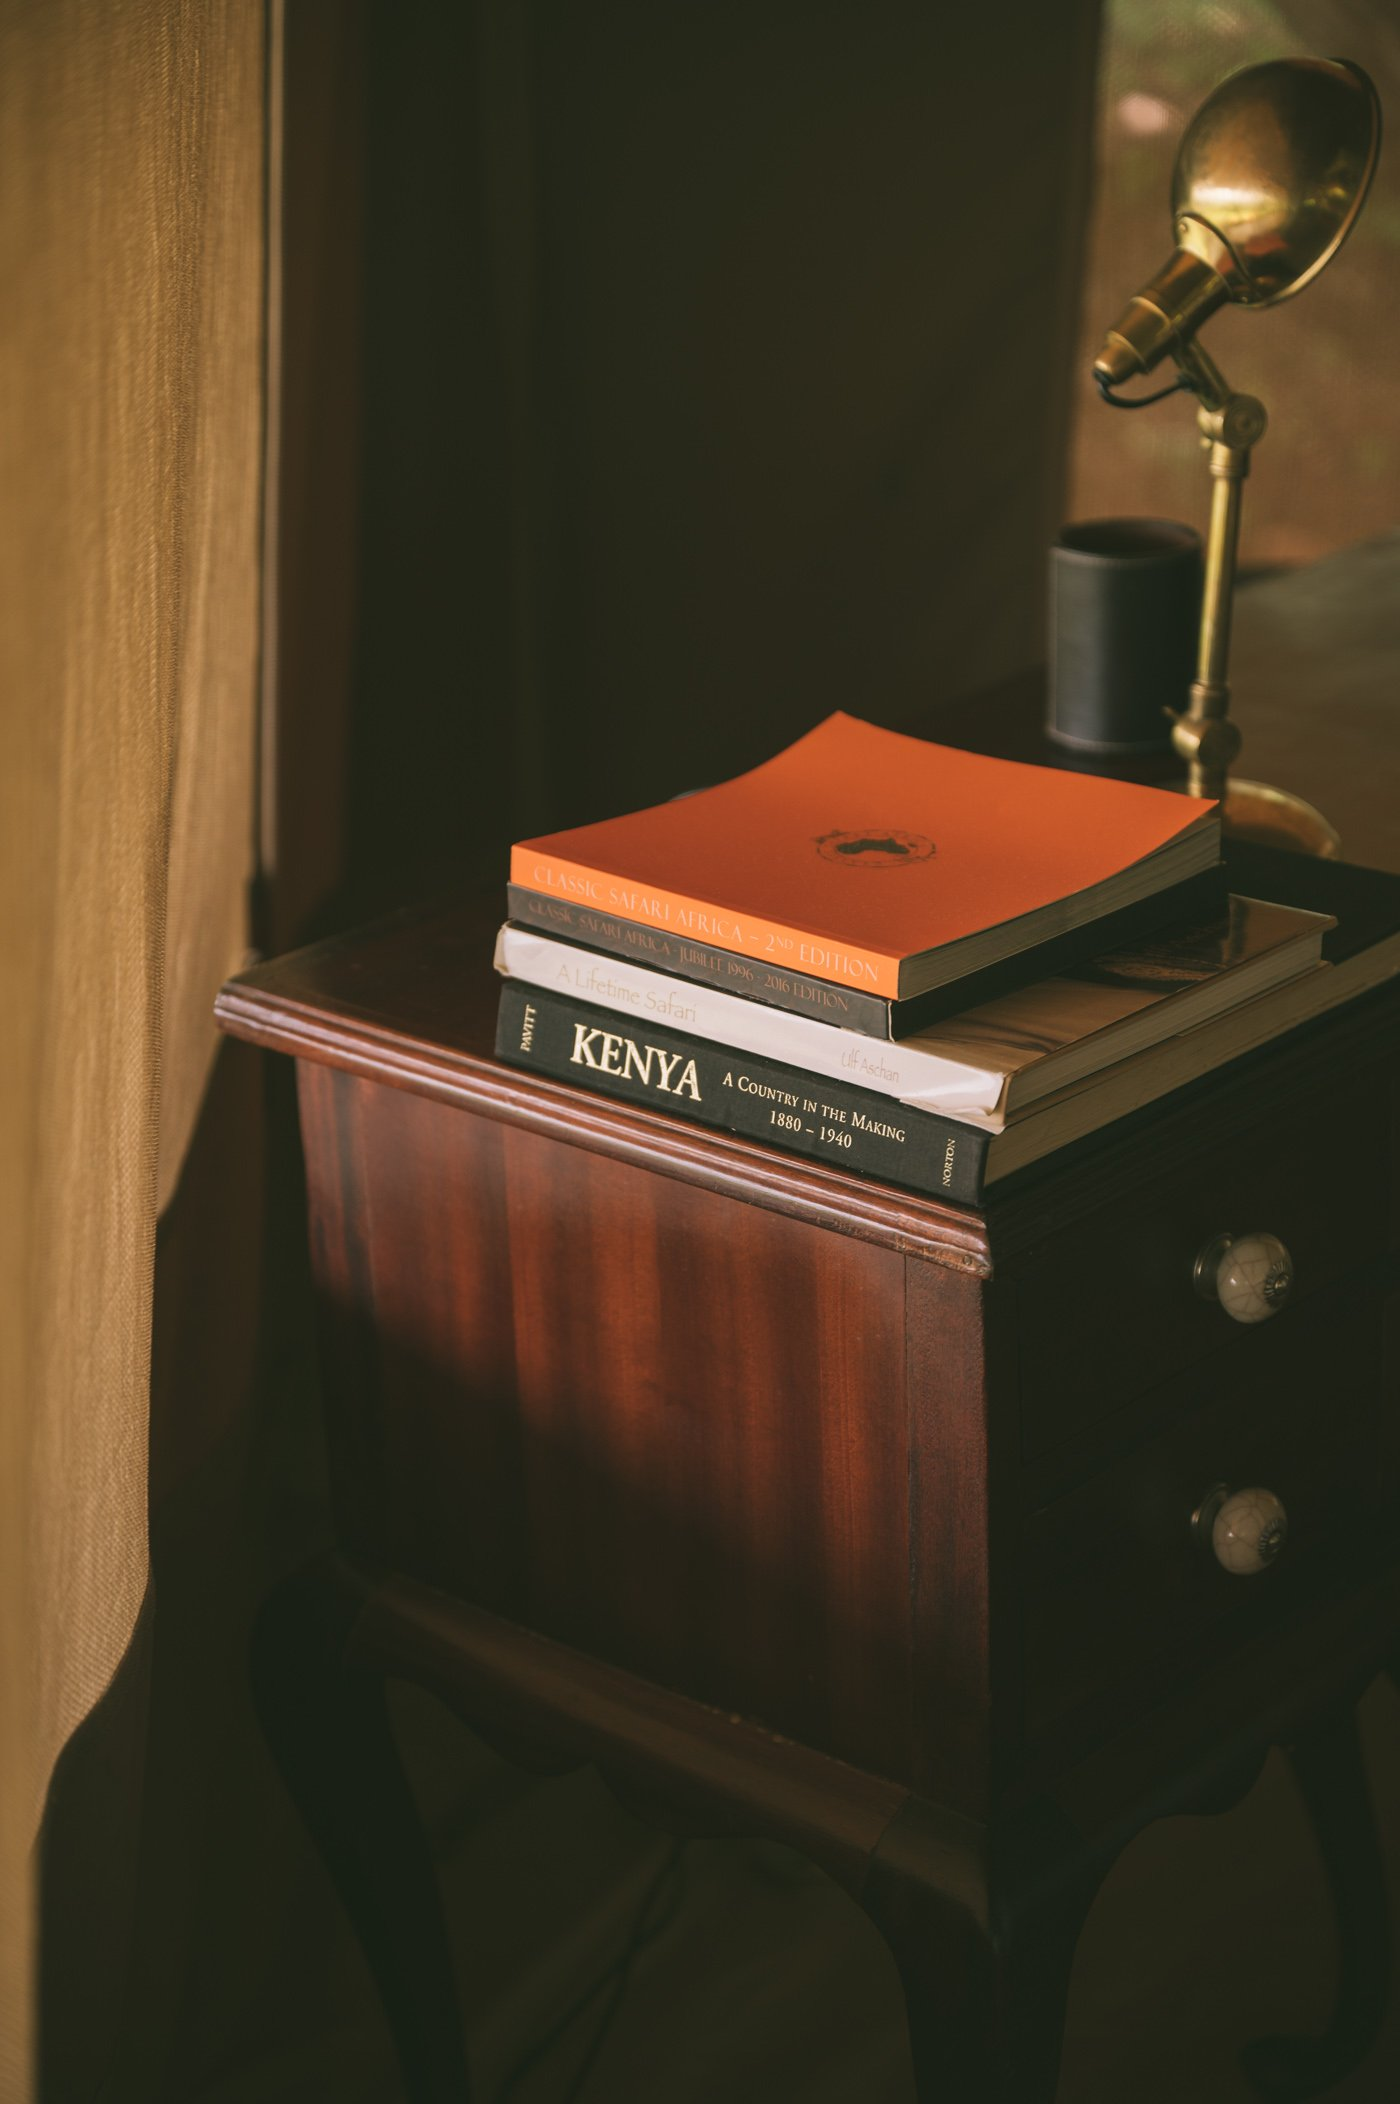 Nightstand at Cottar's 1920s camp in Kenya